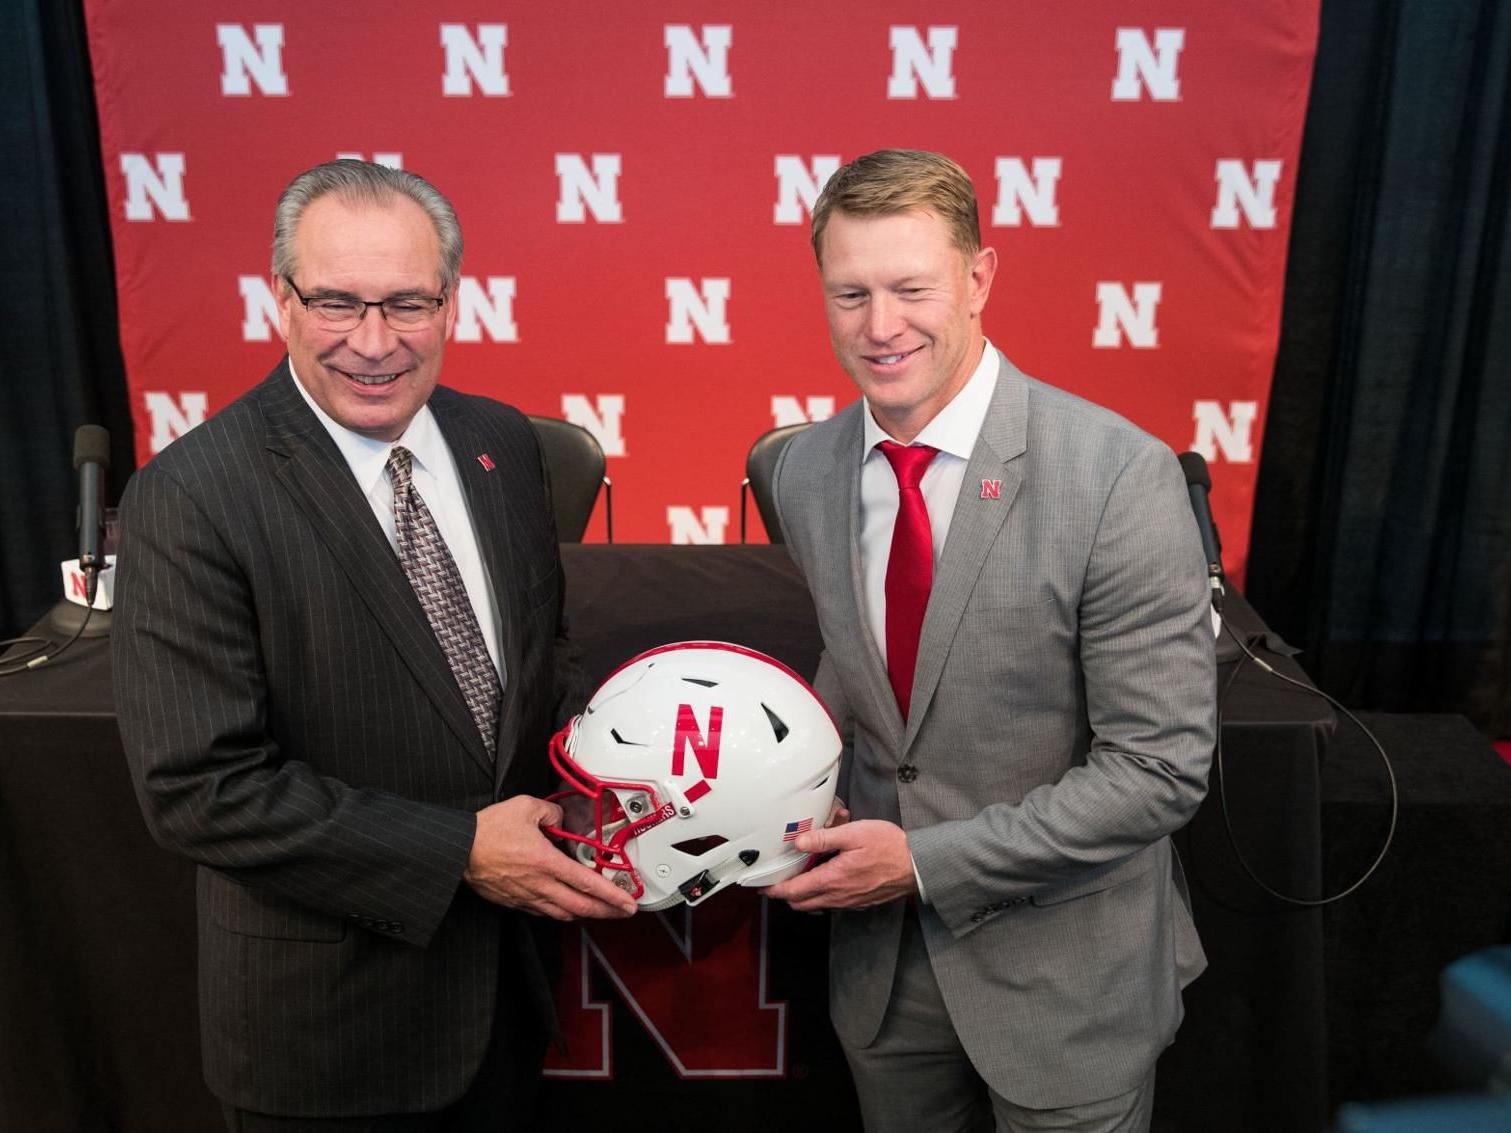 Nebraska A.D. Bill Moos: Husker apparel sales way up thanks to Scott Frost hiring